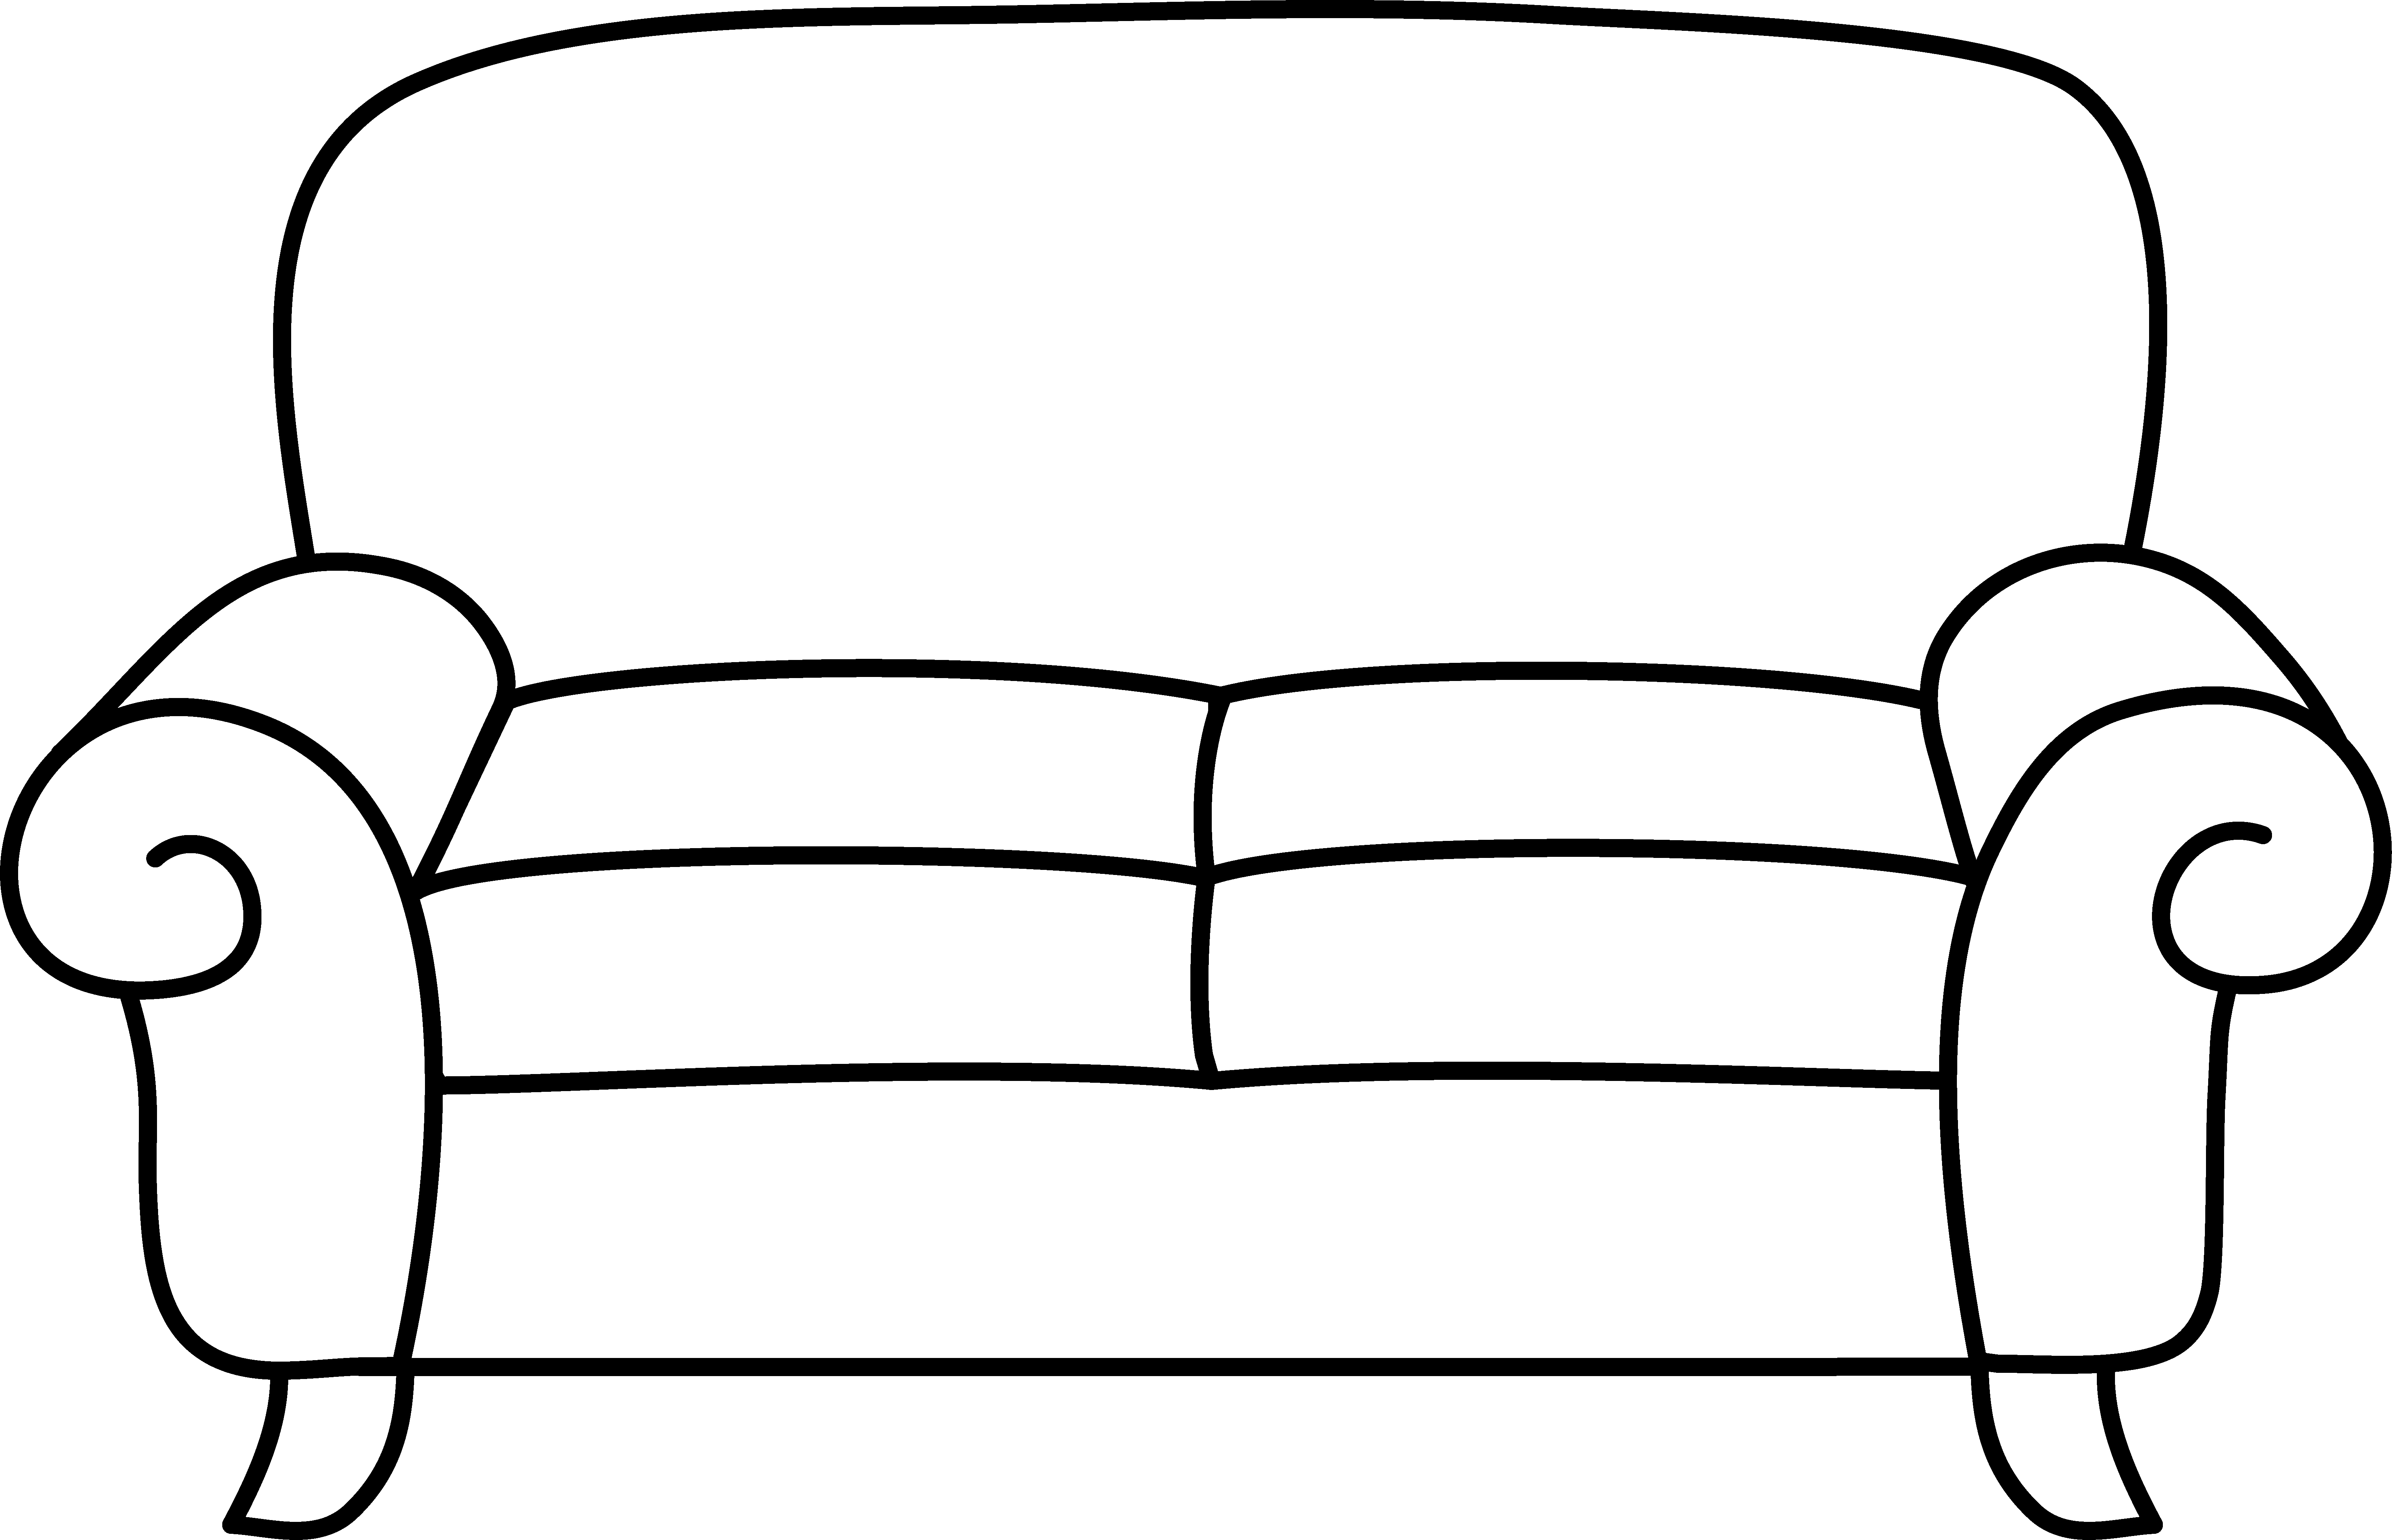 Living Room Clipart | Free download best Living Room Clipart on ...